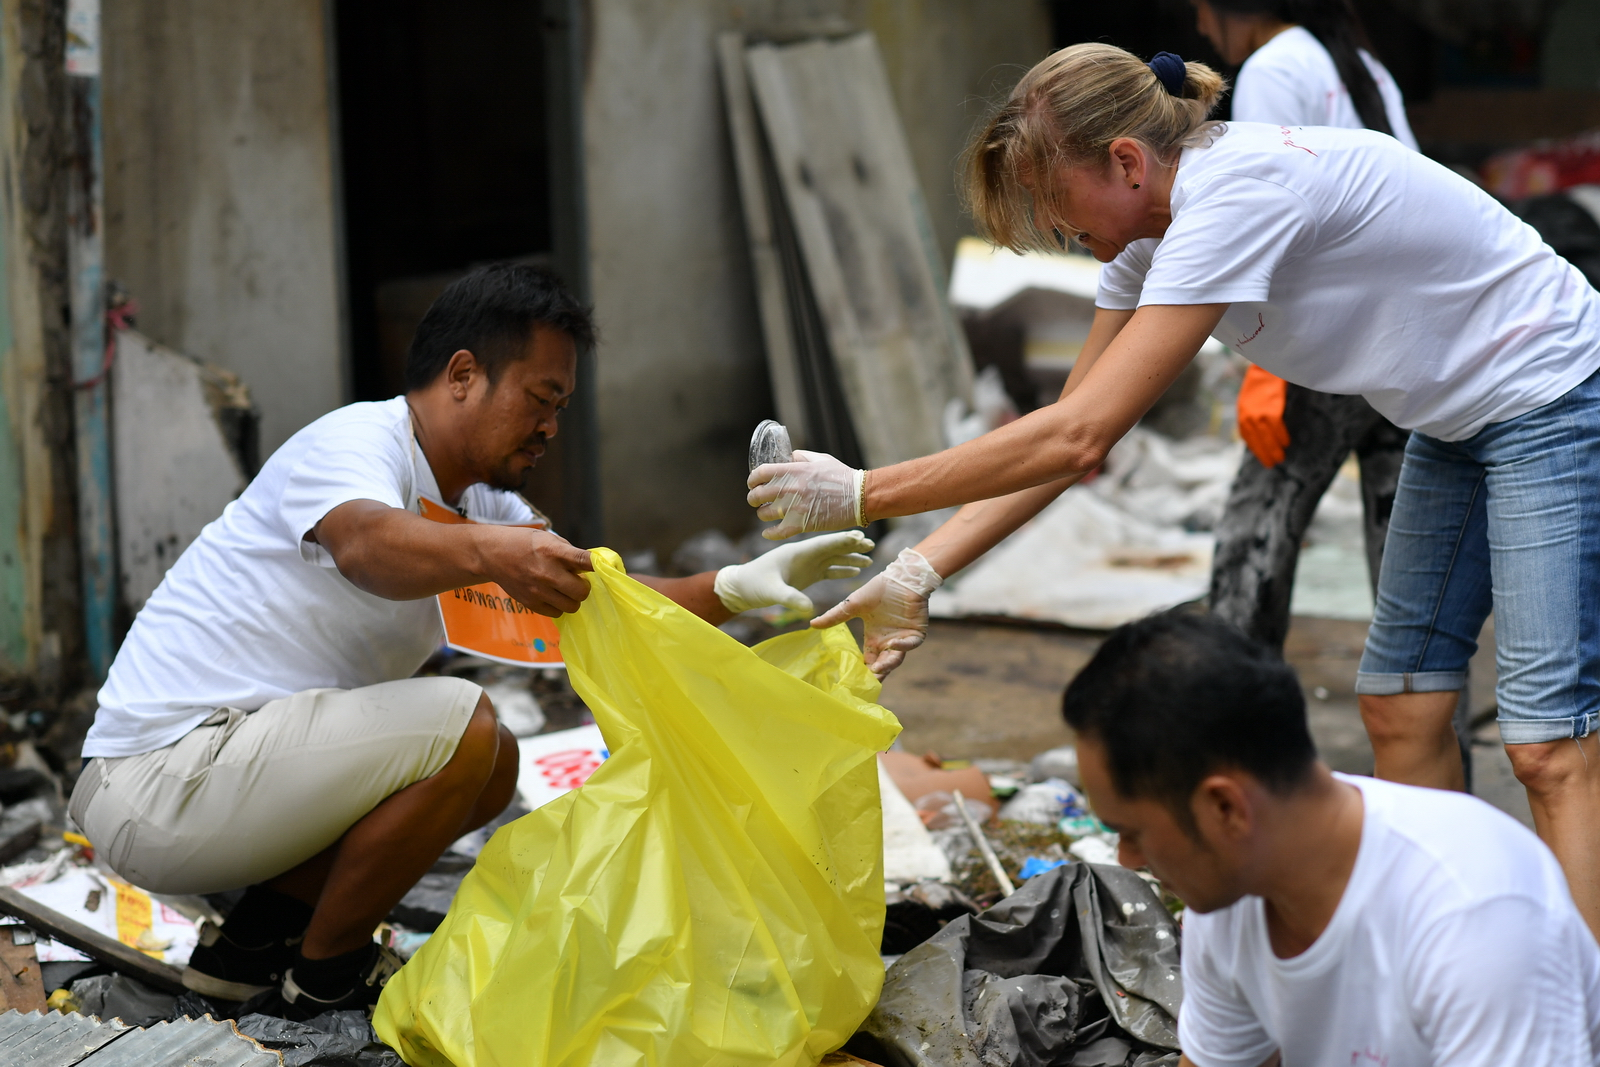 PTendercool-Event-Clean Up The World-190921-104